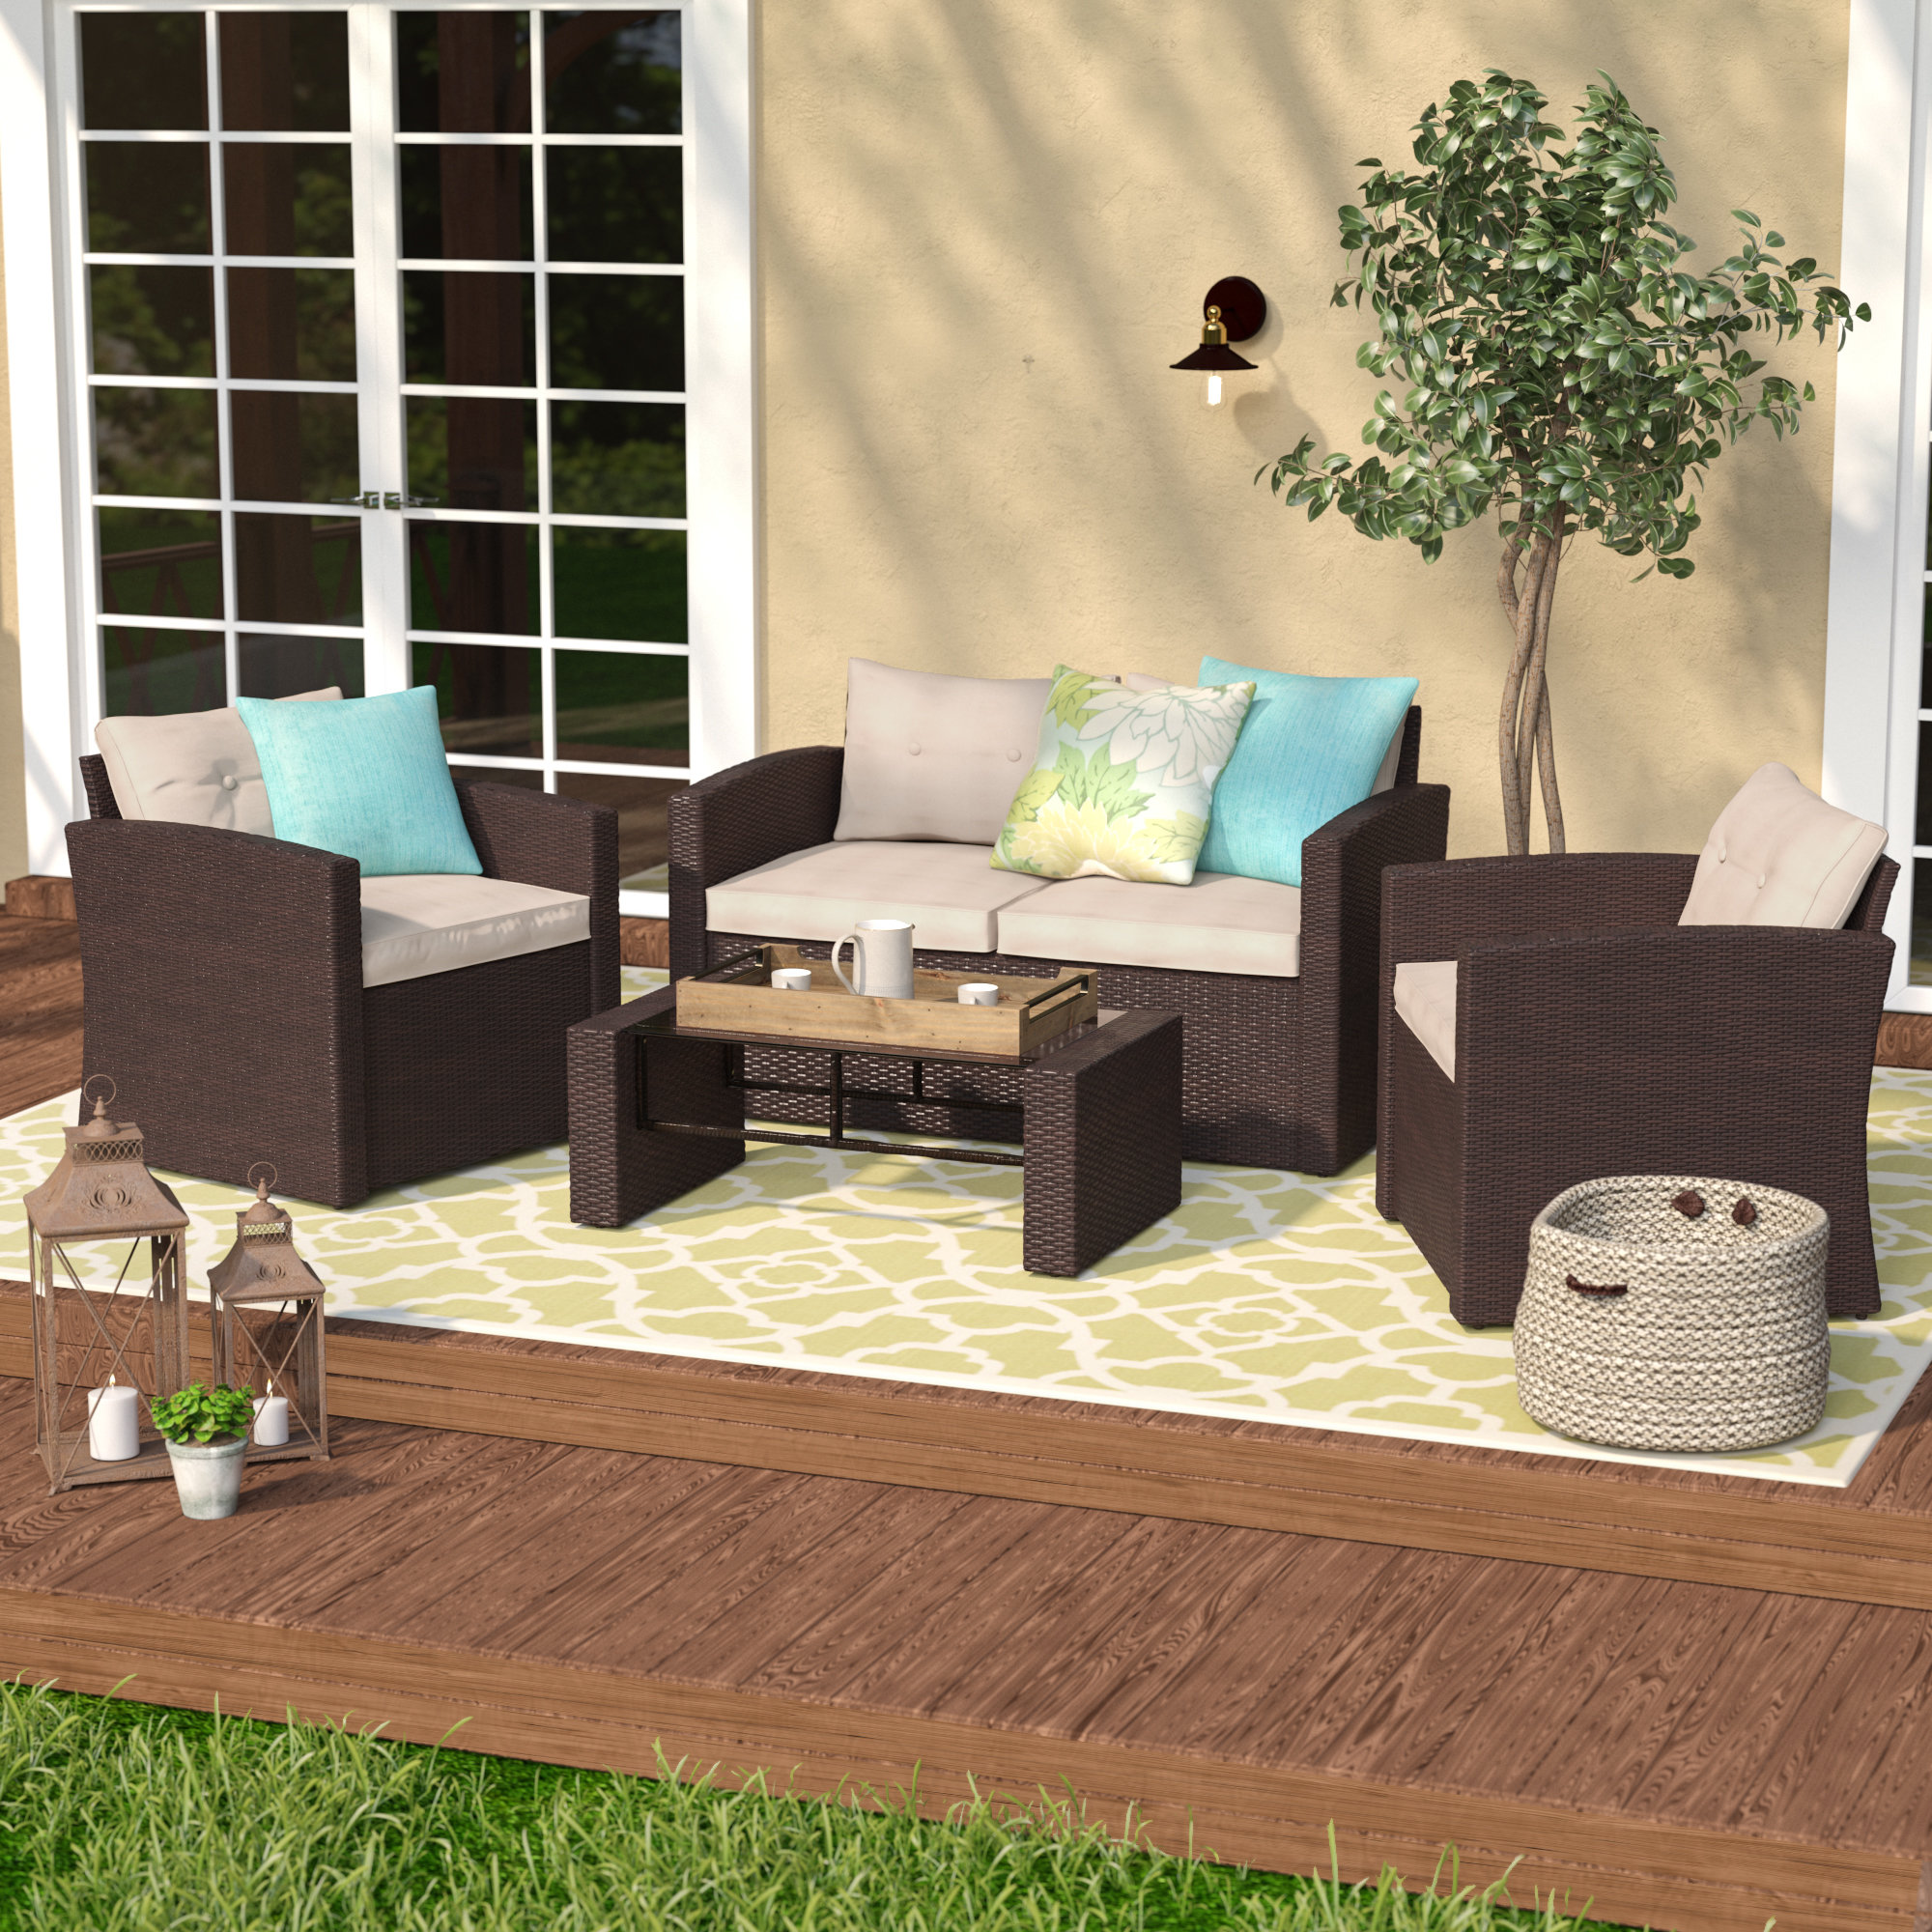 person patio conversation sets you love rawtenstall piece sofa set with cushions round metal glynn accent table quickview small mosaic dark wood and coffee wooden threshold bar